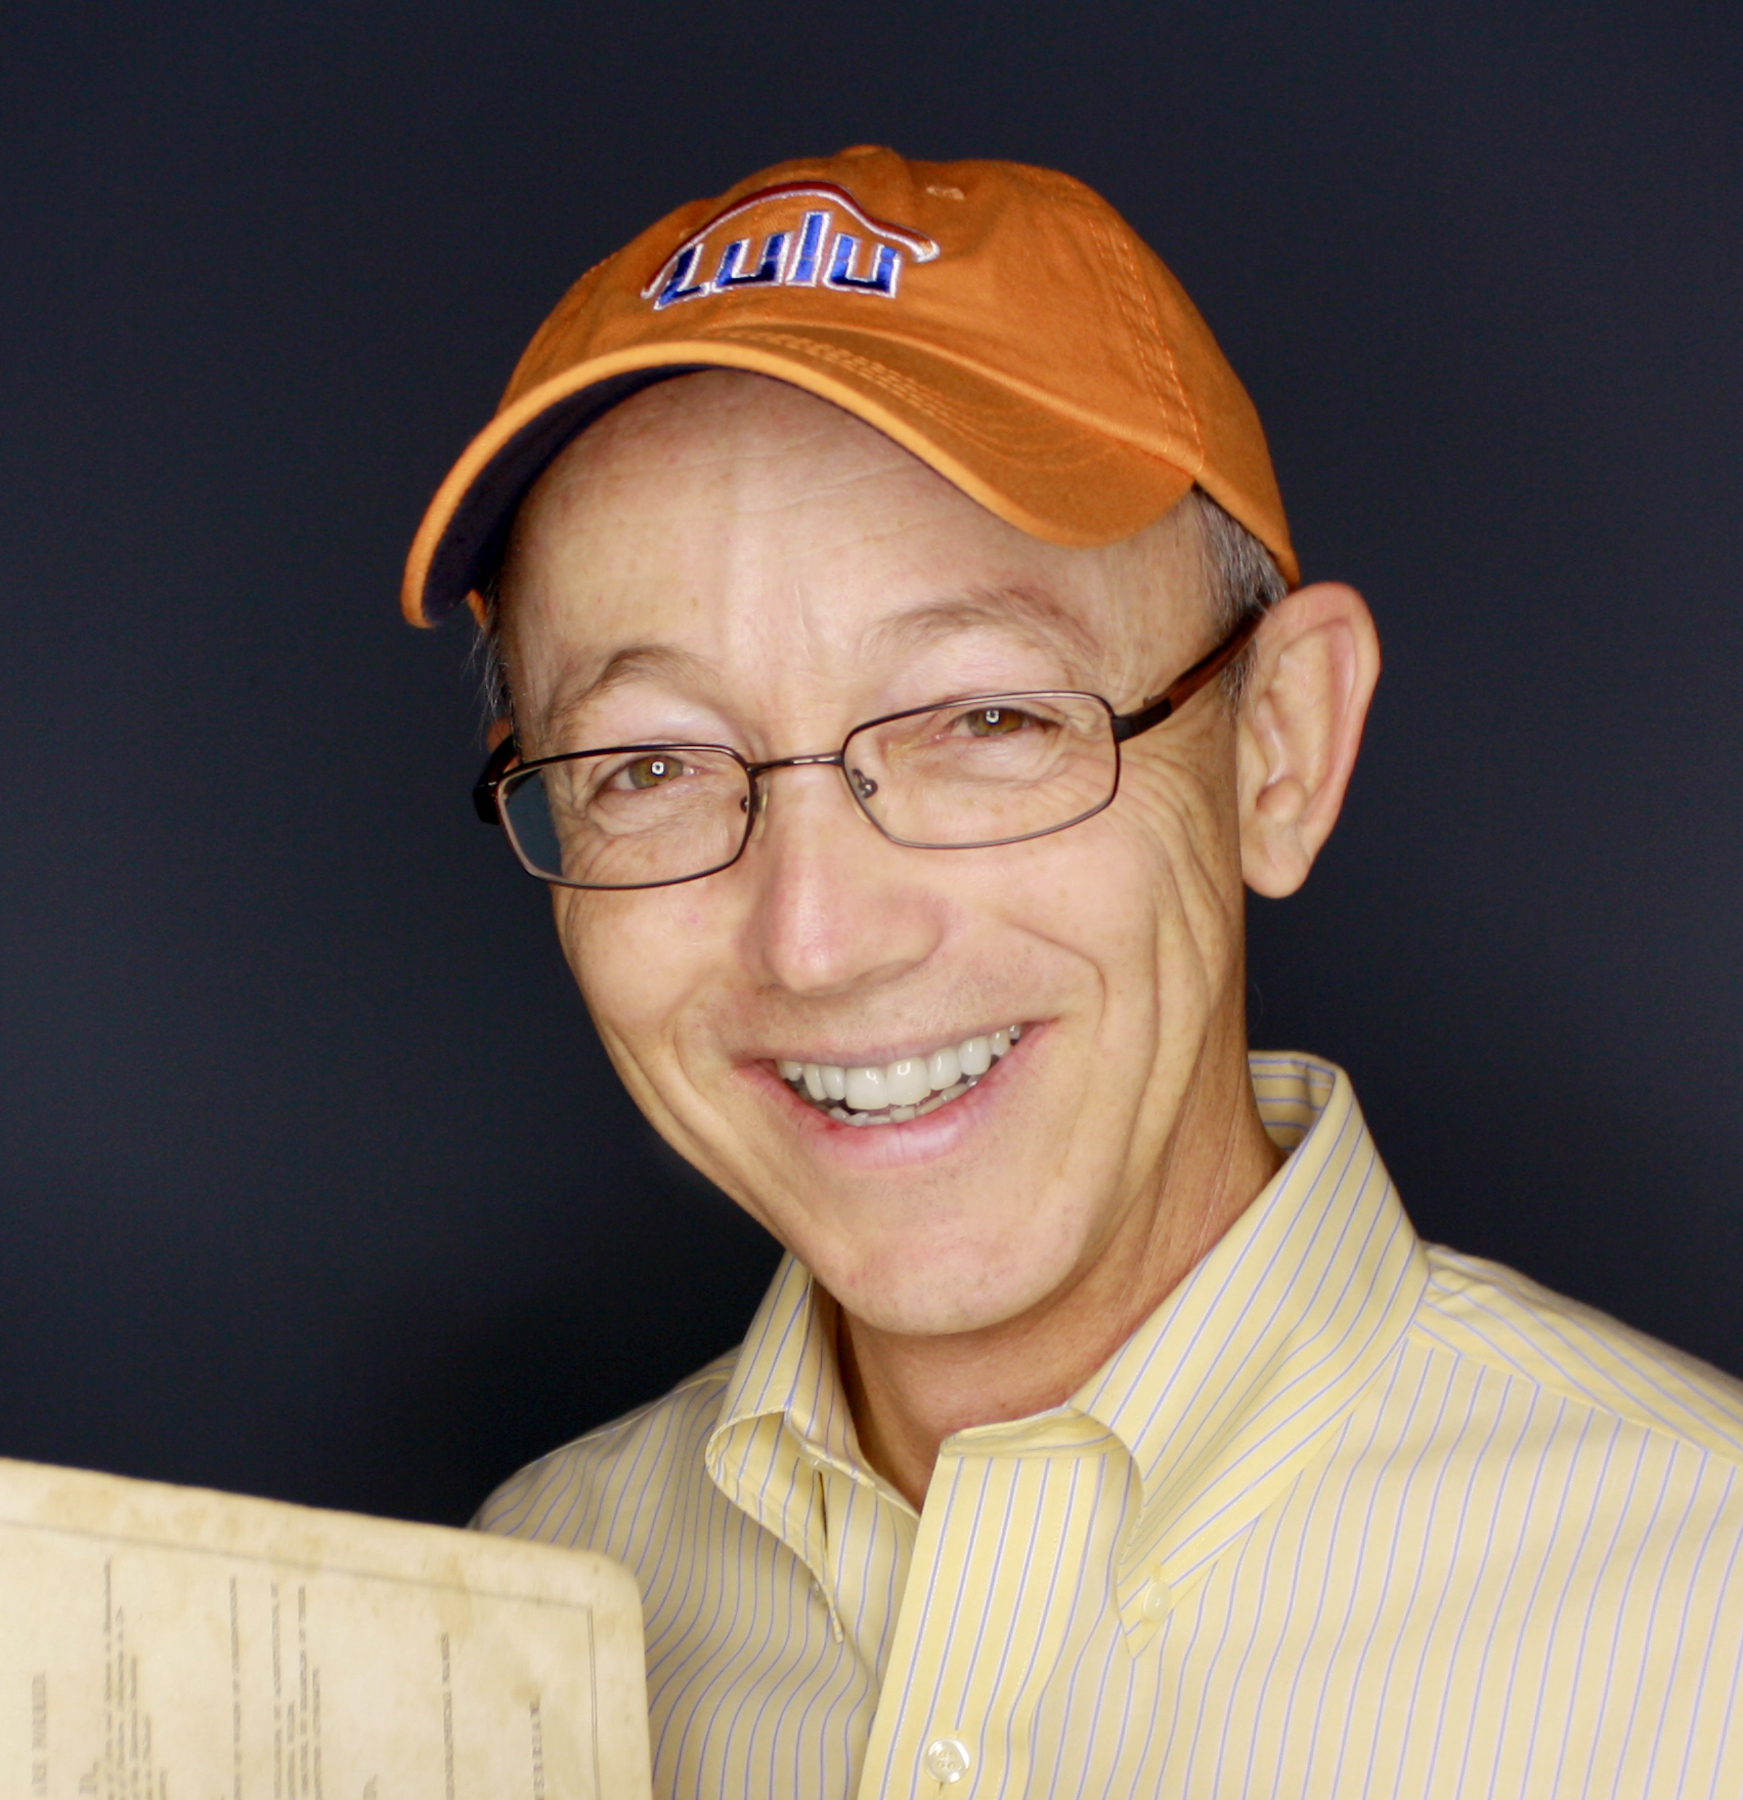 Bob Young, Lulu CEO and serial entrepreneur